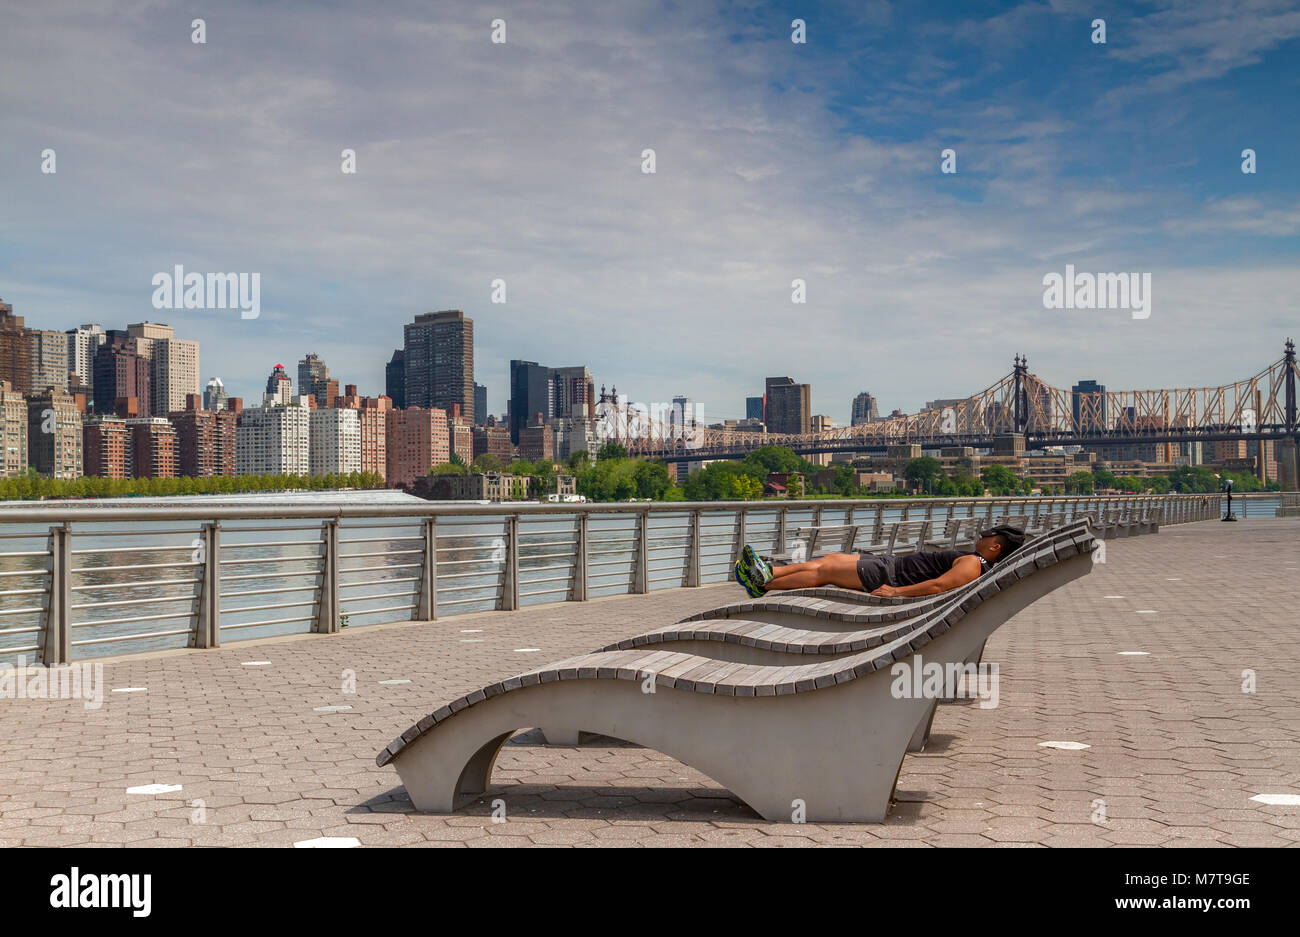 Man sunbathing on a wooden sun lounger in Gantry Plaza State Park across the East River from Manhattan with the Queensboro Bridge in the distance Stock Photo